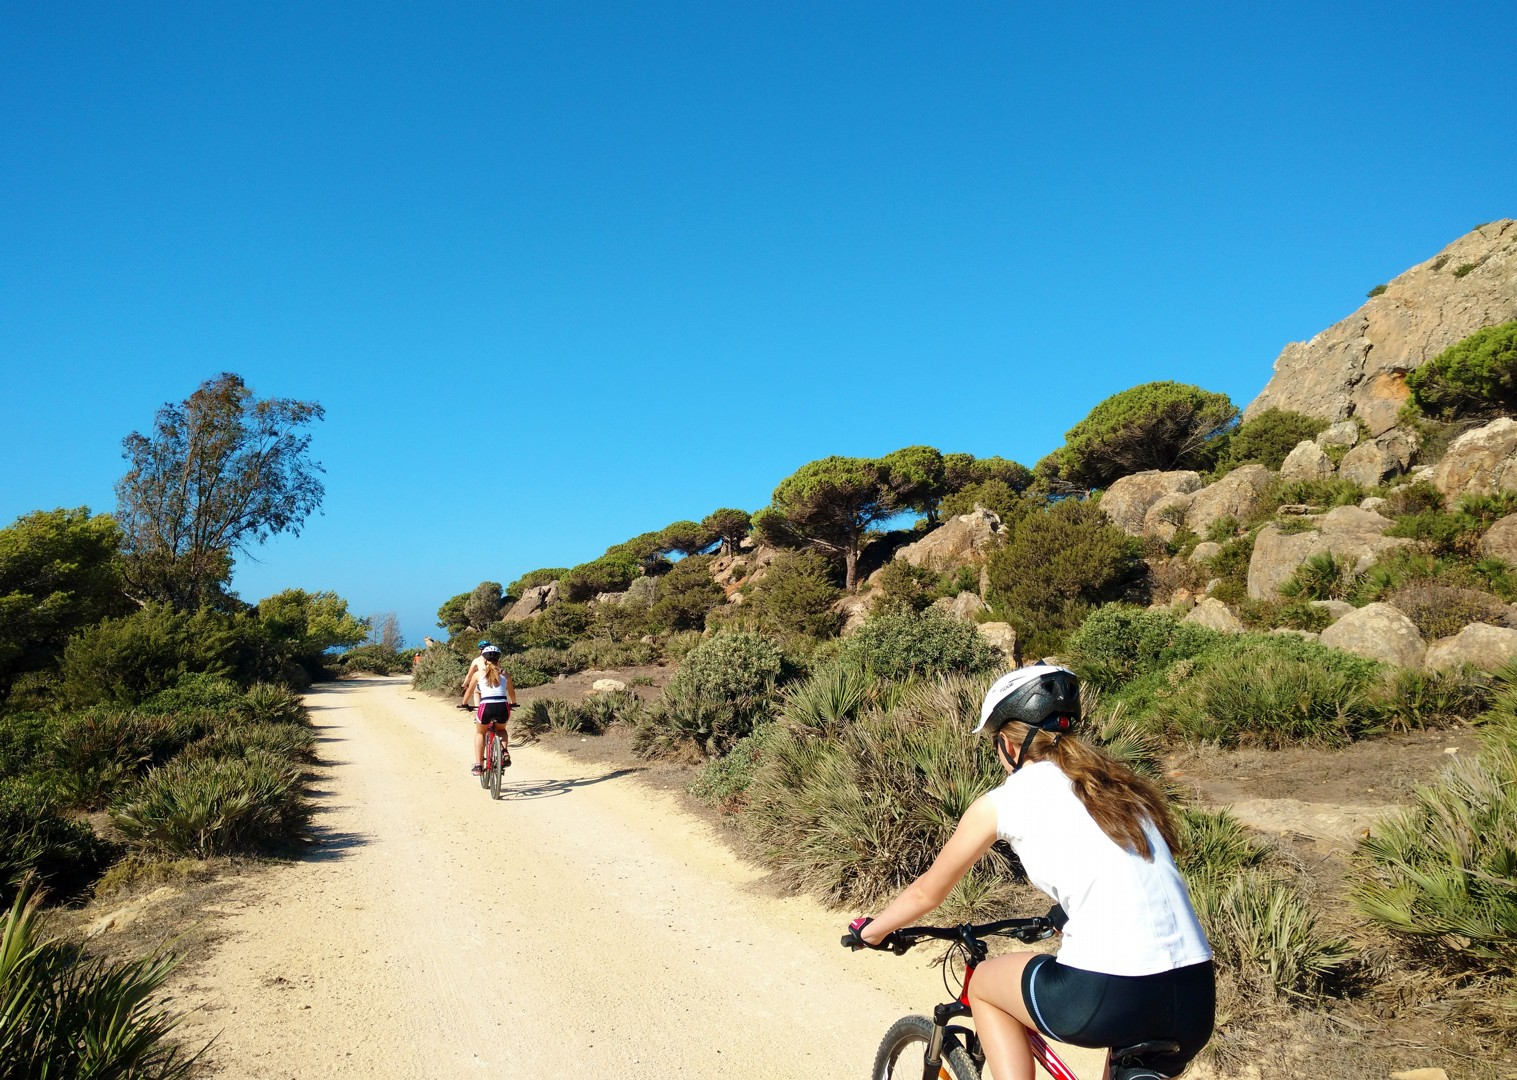 stress-free-cycling-holiday-with-the-kids-spain-jpg - Southern Spain - Coastal Adventurer - Self-Guided Family Cycling Holiday - Family Cycling